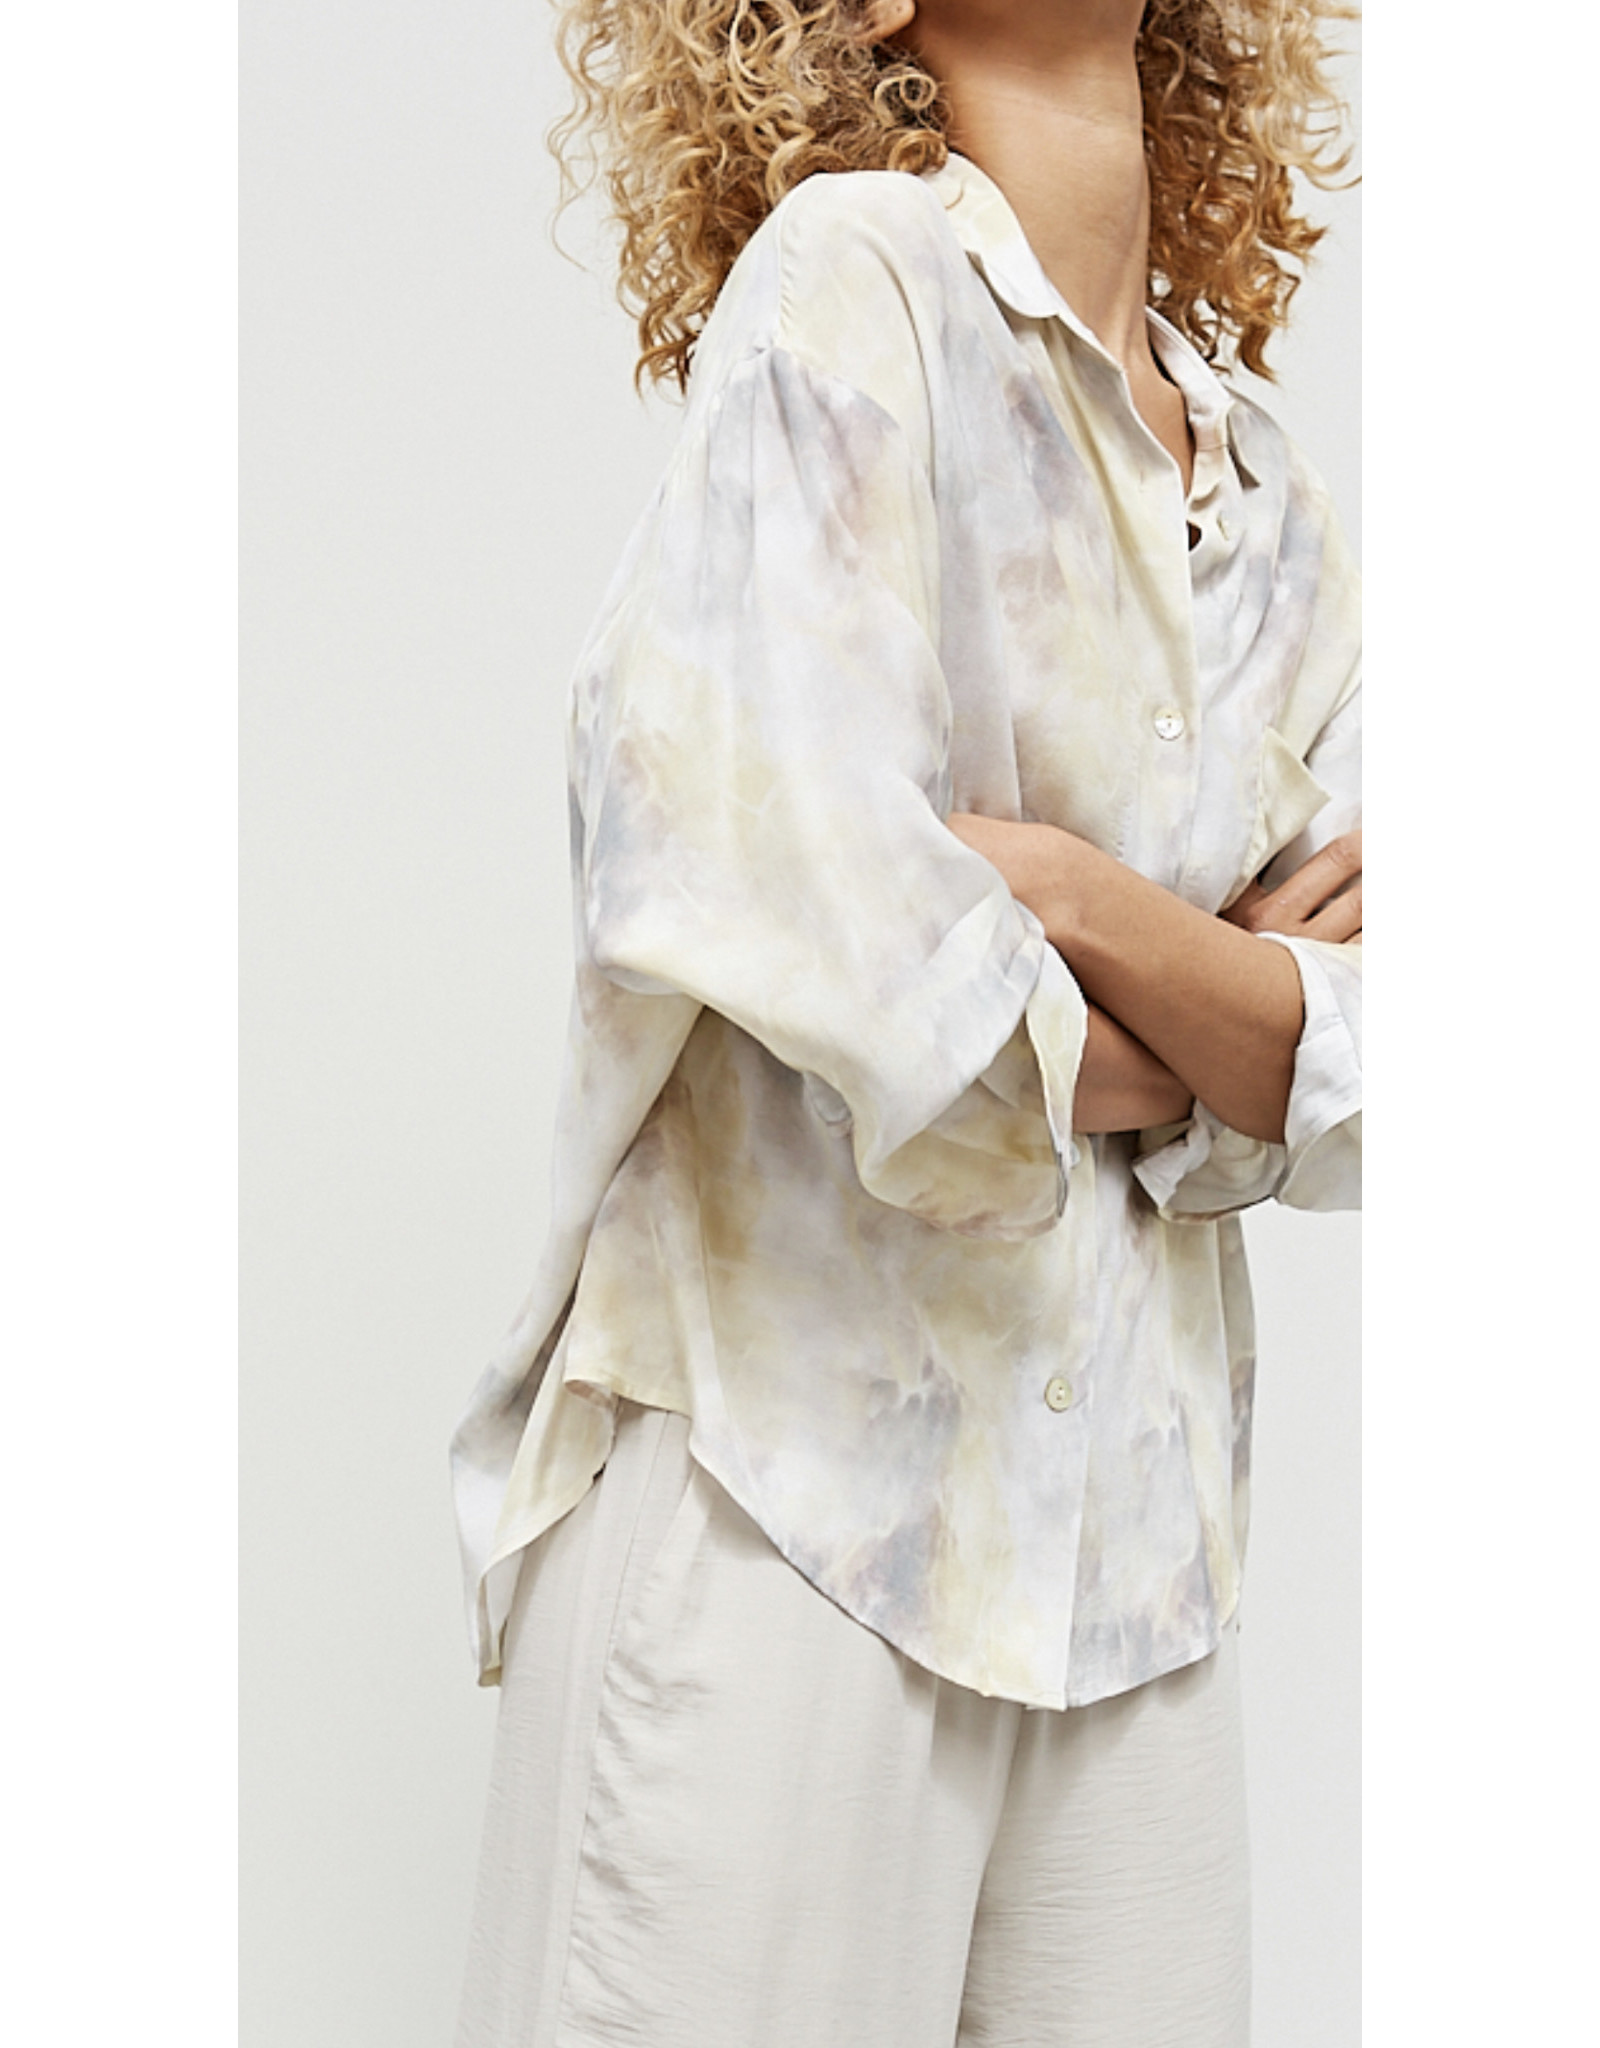 GRADE & GATHER MARBLE BUTTON UP TOP